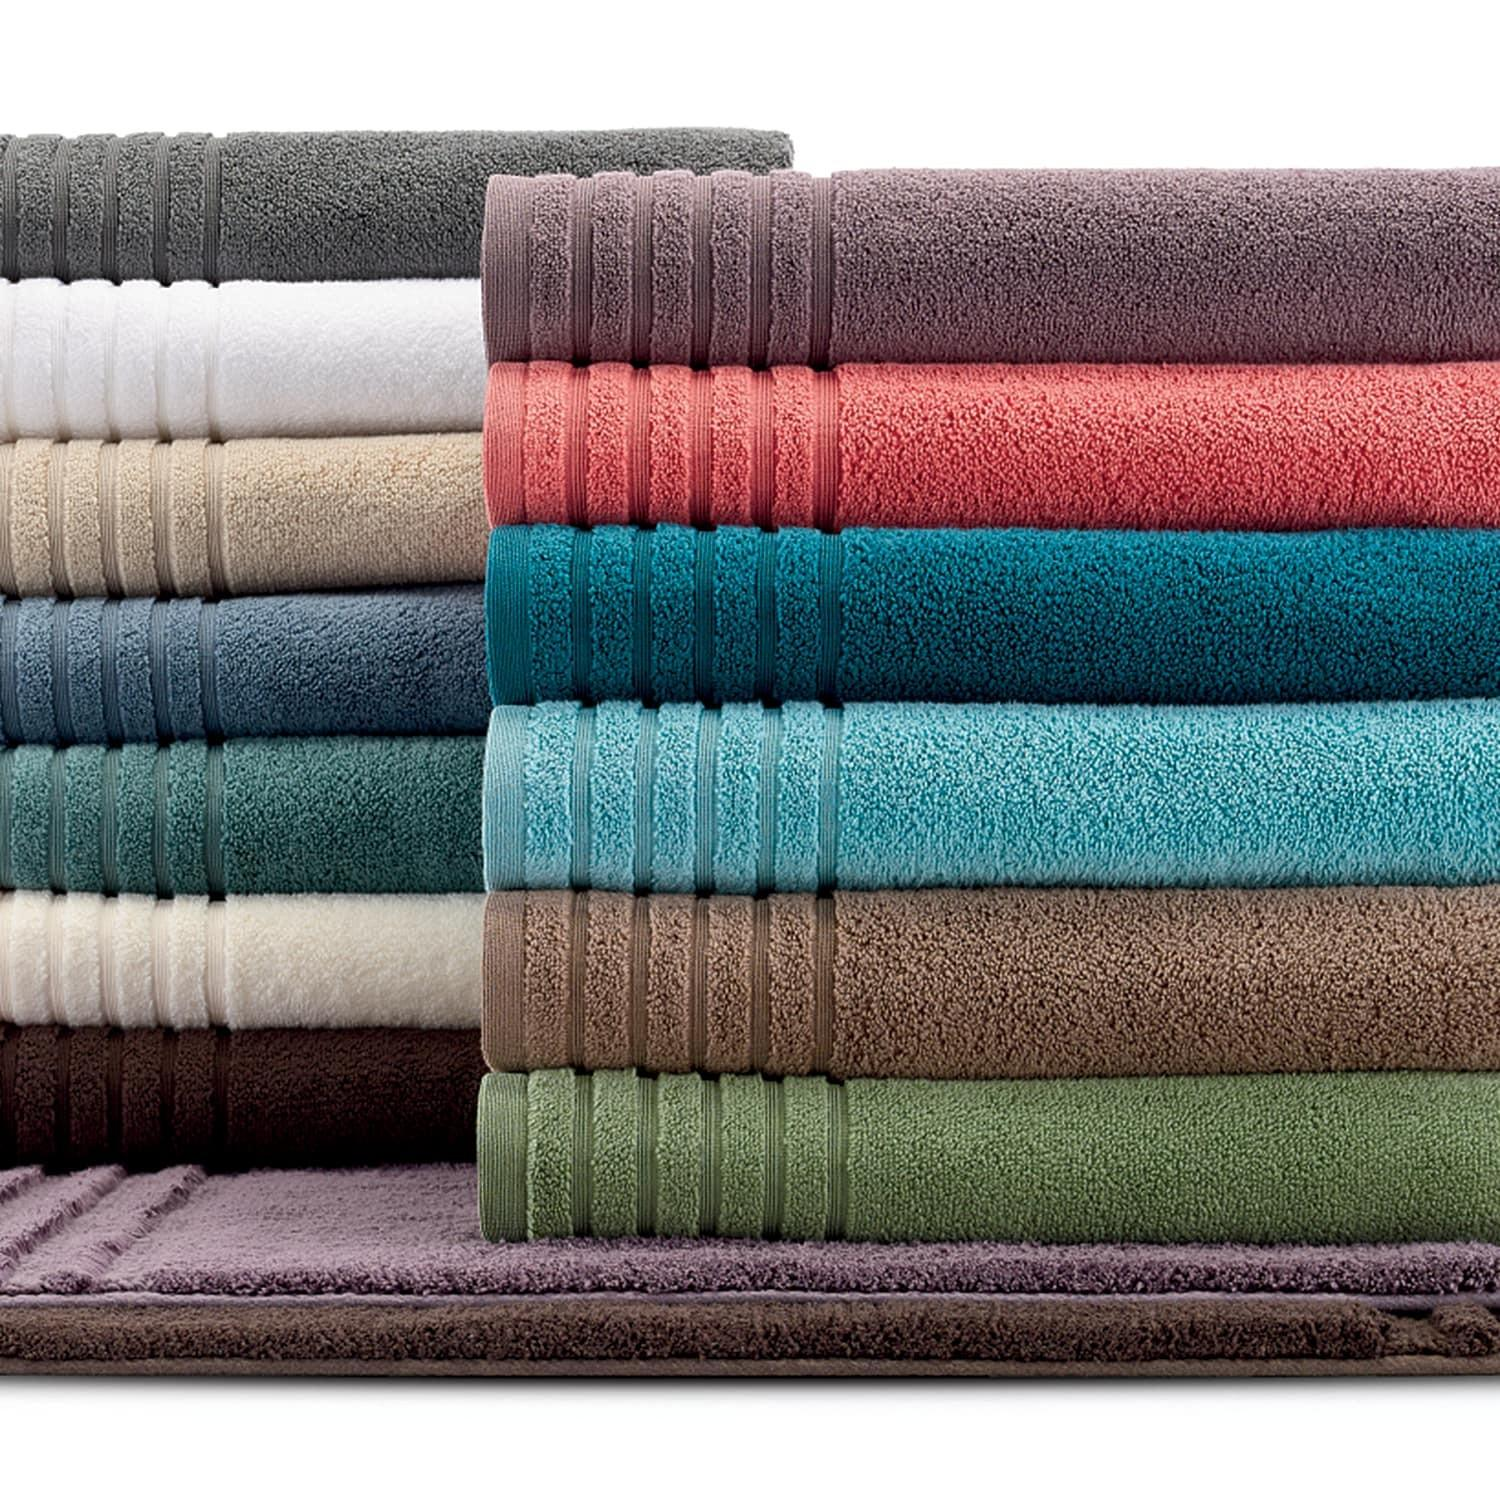 Bathroom Towels Often Should Wash Your